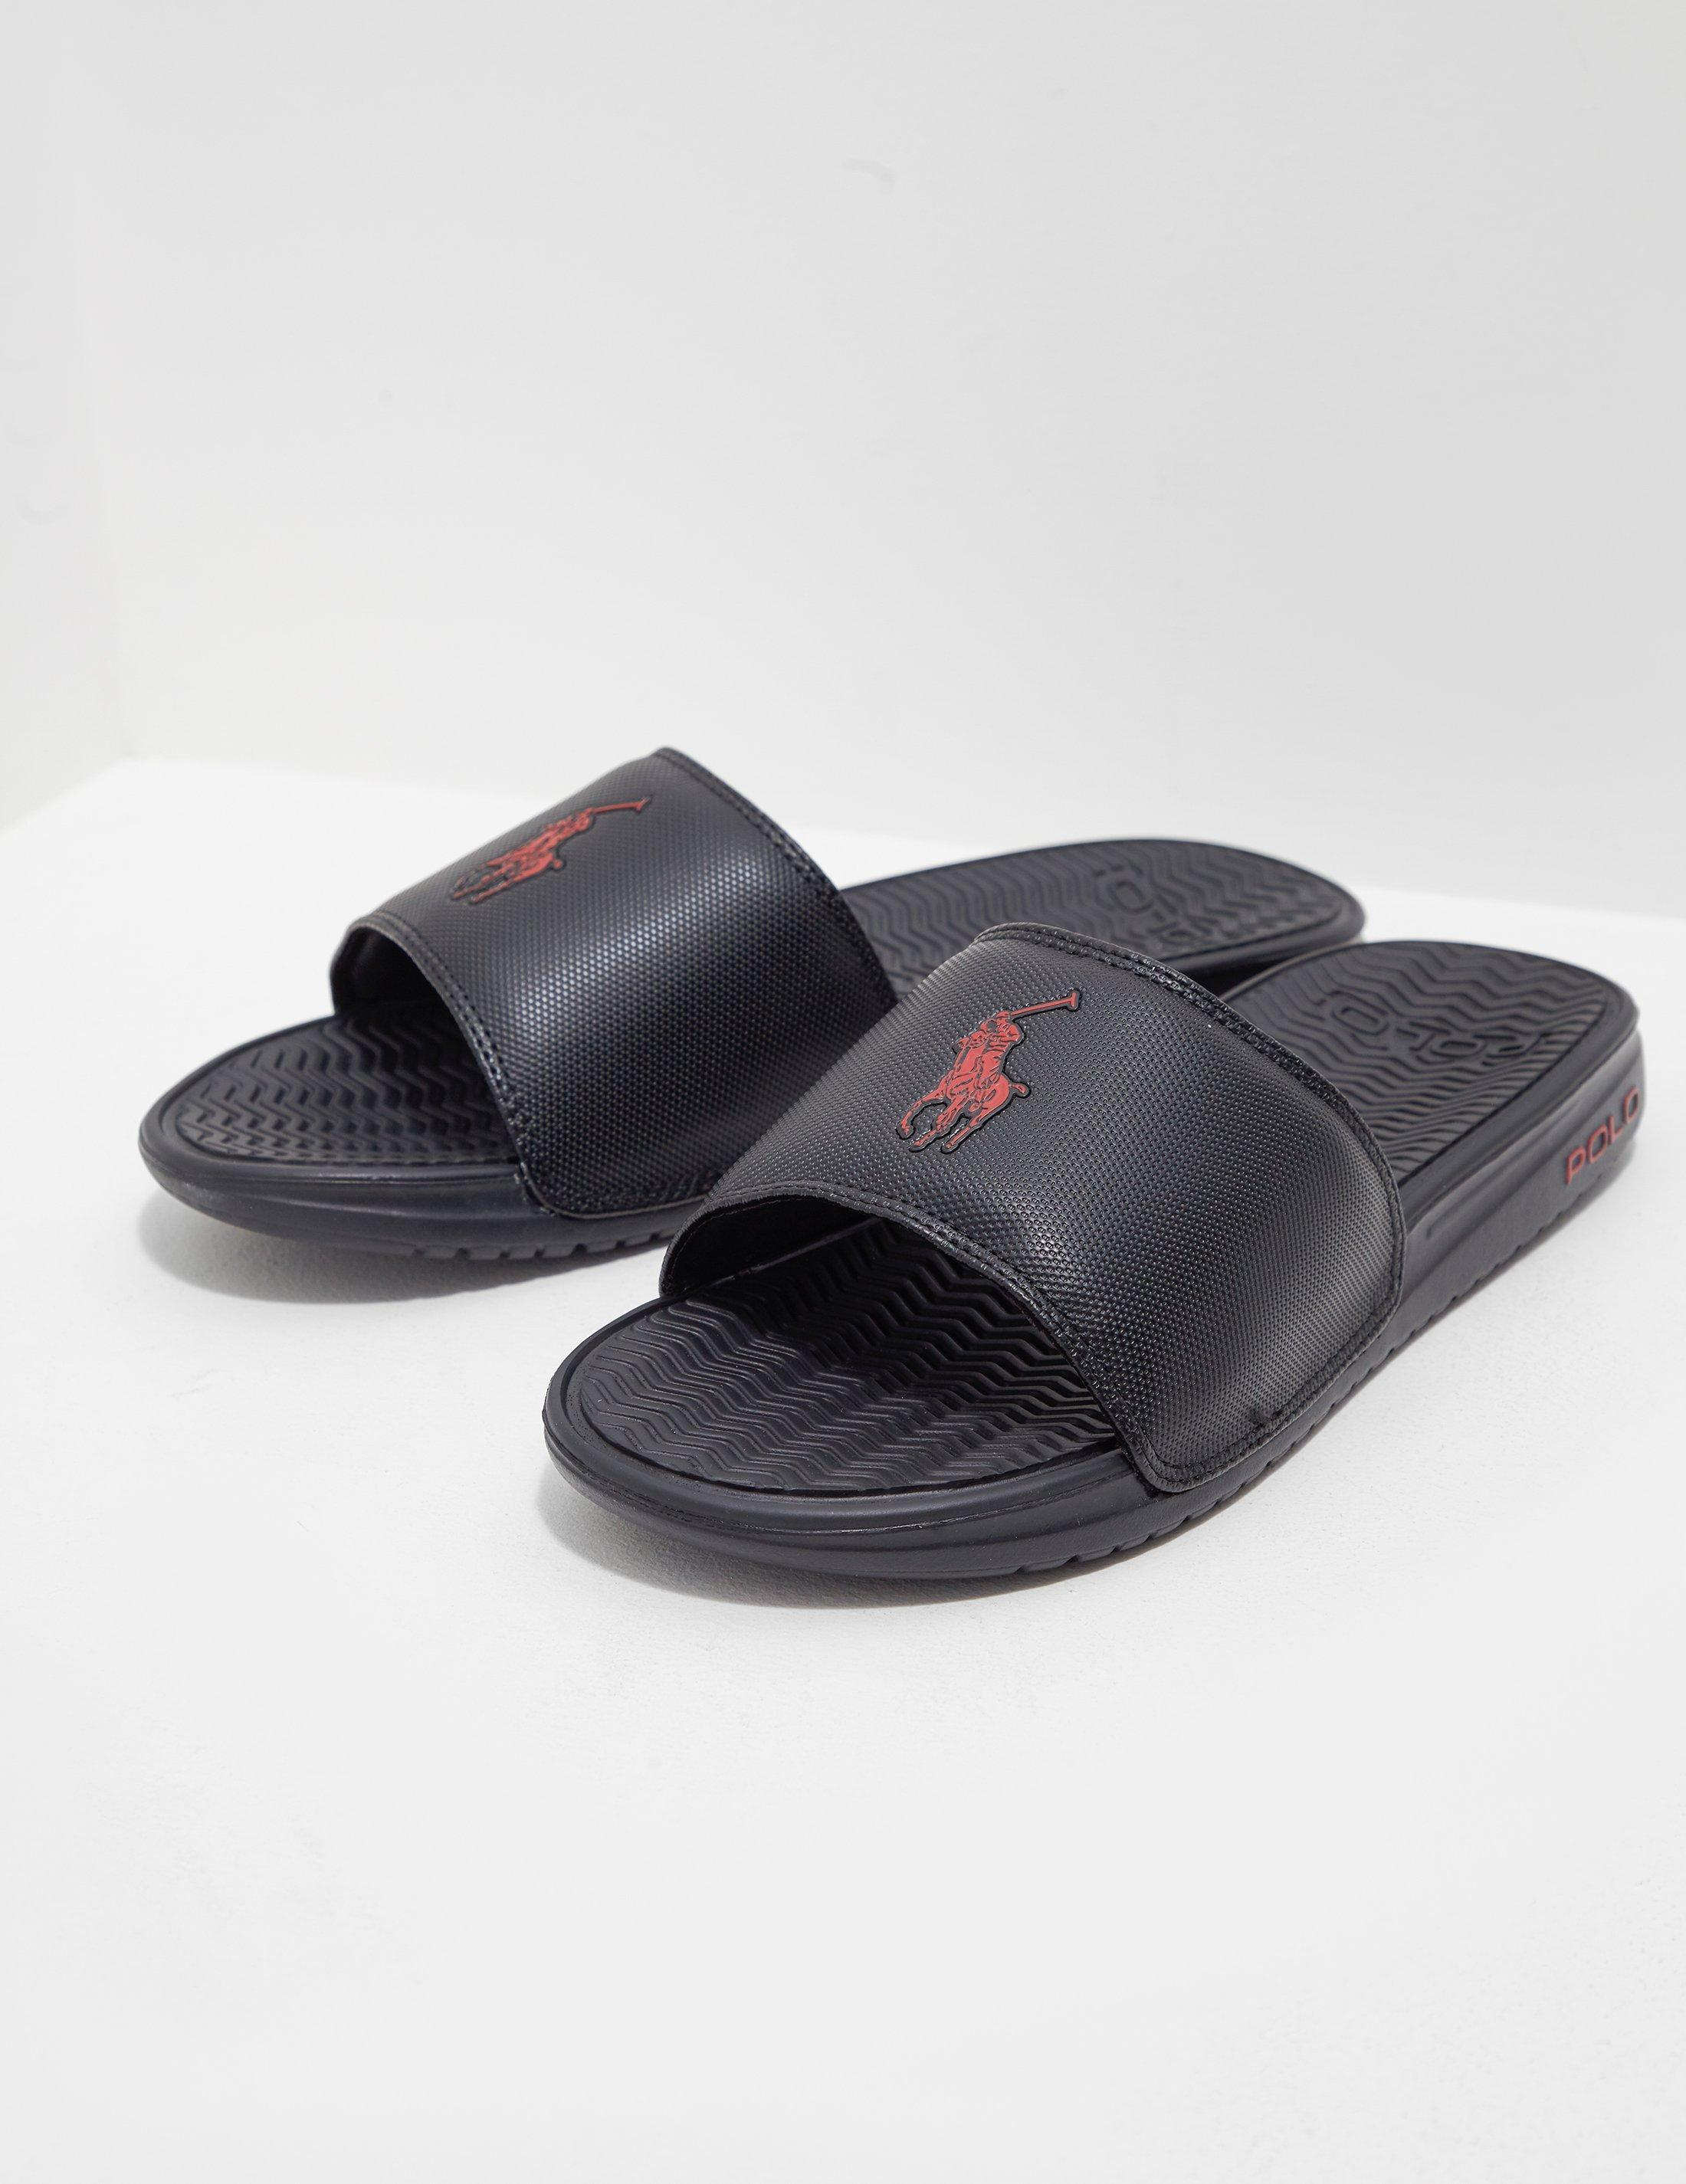 6f7d5988c3a1 Polo Ralph Lauren Rodwell Slide Sandal in Black for Men - Save 43 ...